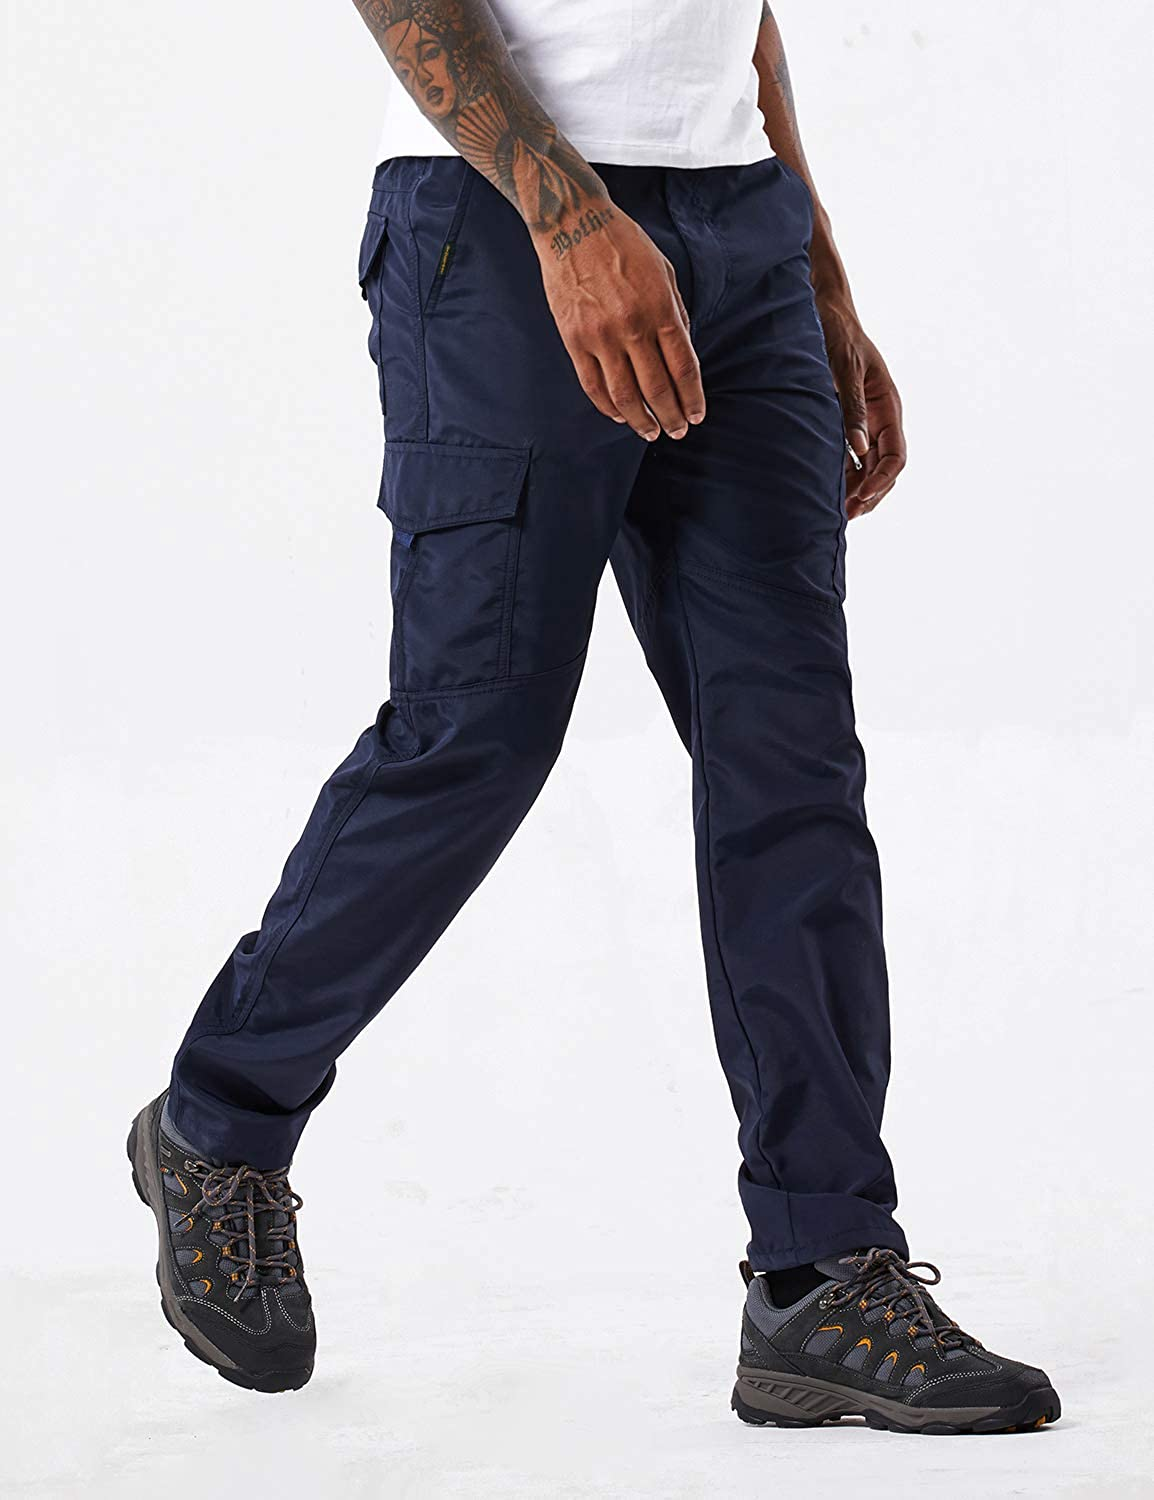 Mens Outdoor Hiking Pants Lightweight and Thick Fleece Cargo Climbing Camping Ski Trousers with Belt